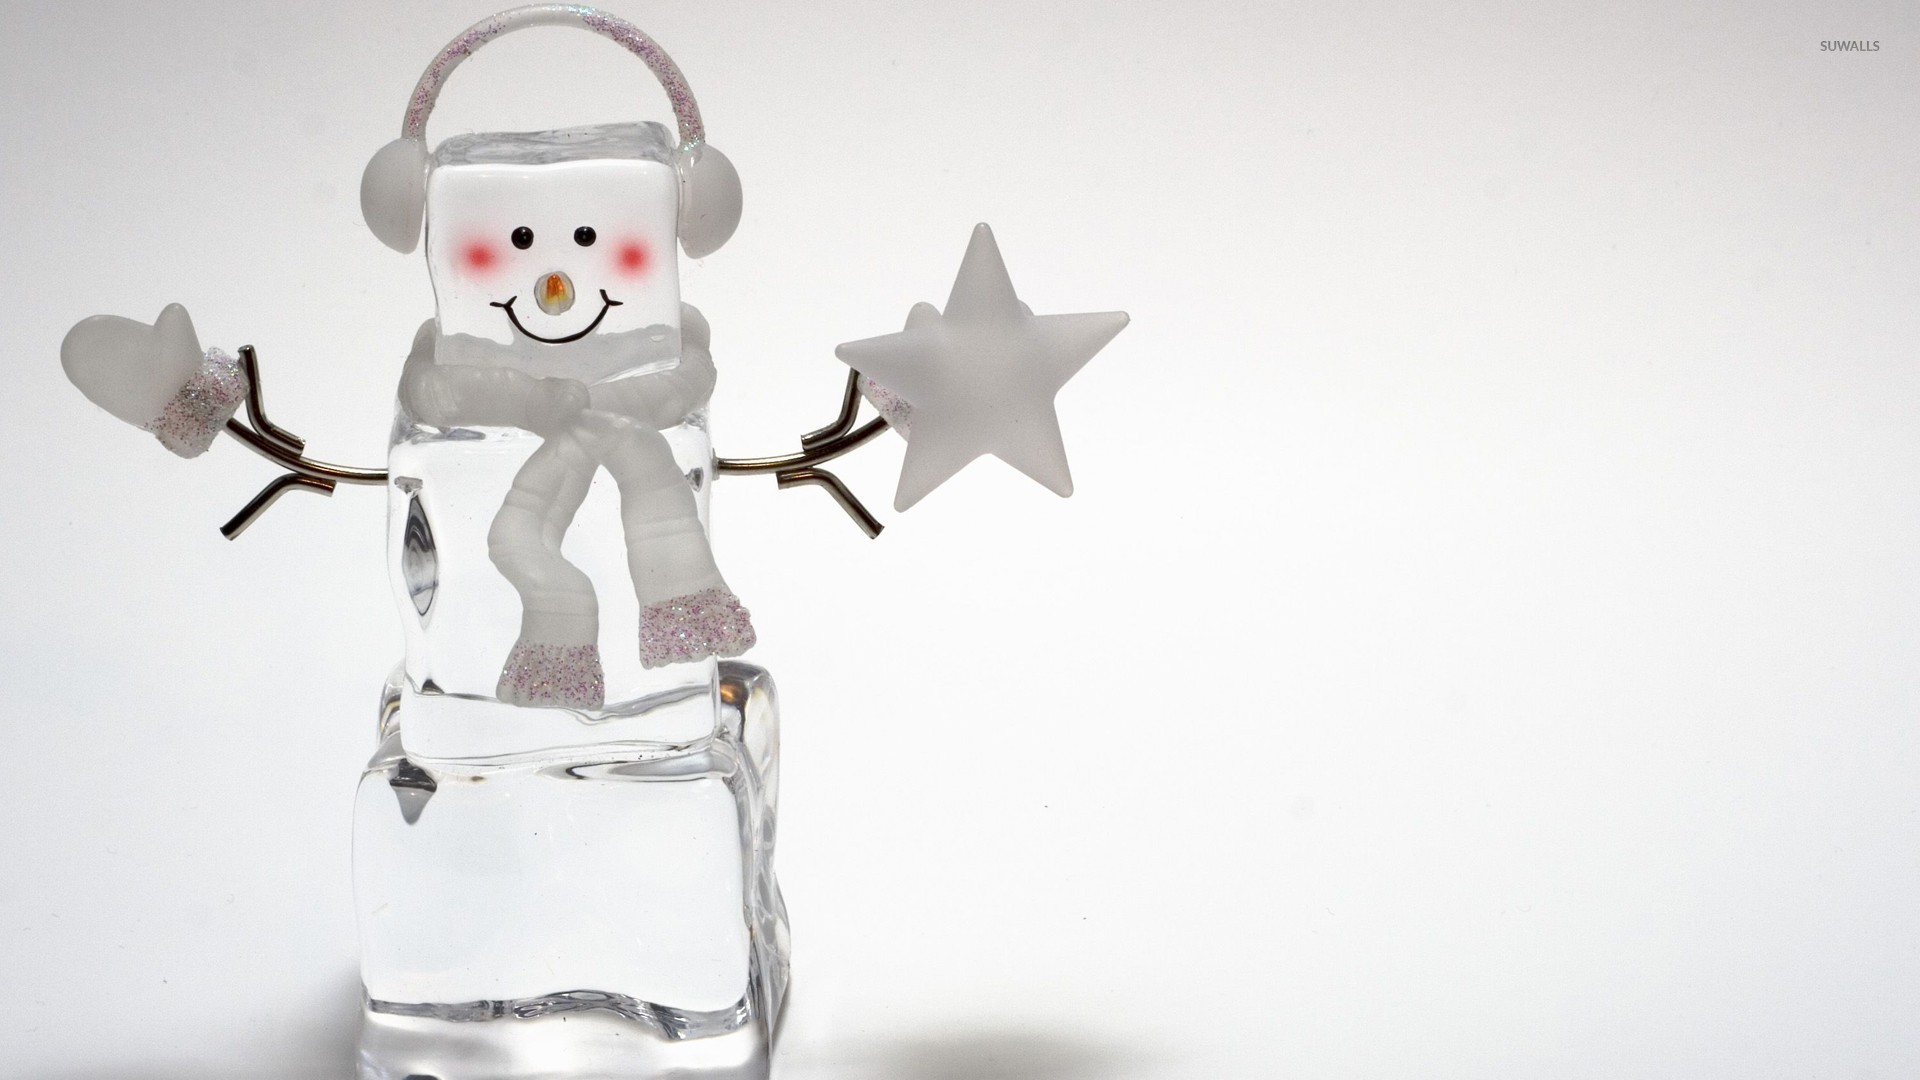 Ice cube snowman wallpaper - Holiday wallpapers - #26037